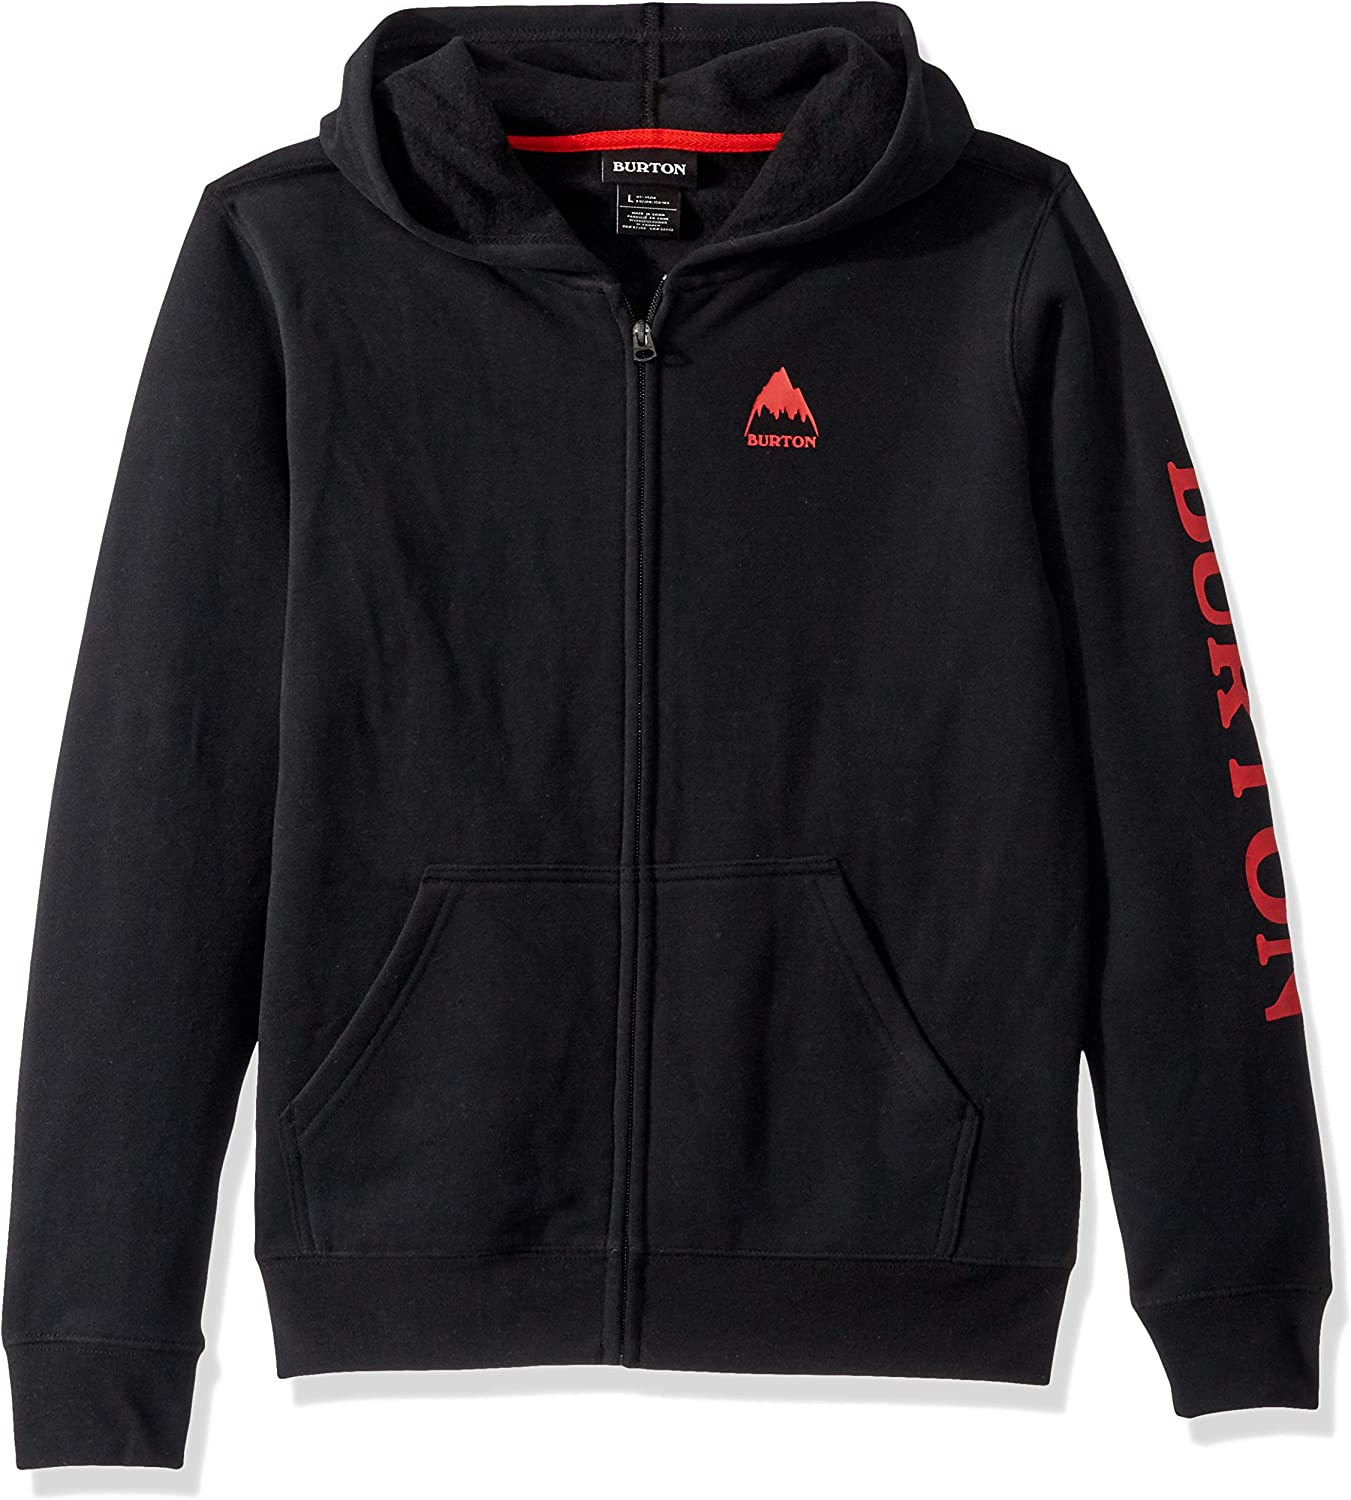 Burton Kids Elite Full Zip Hoodie Sweatshirt